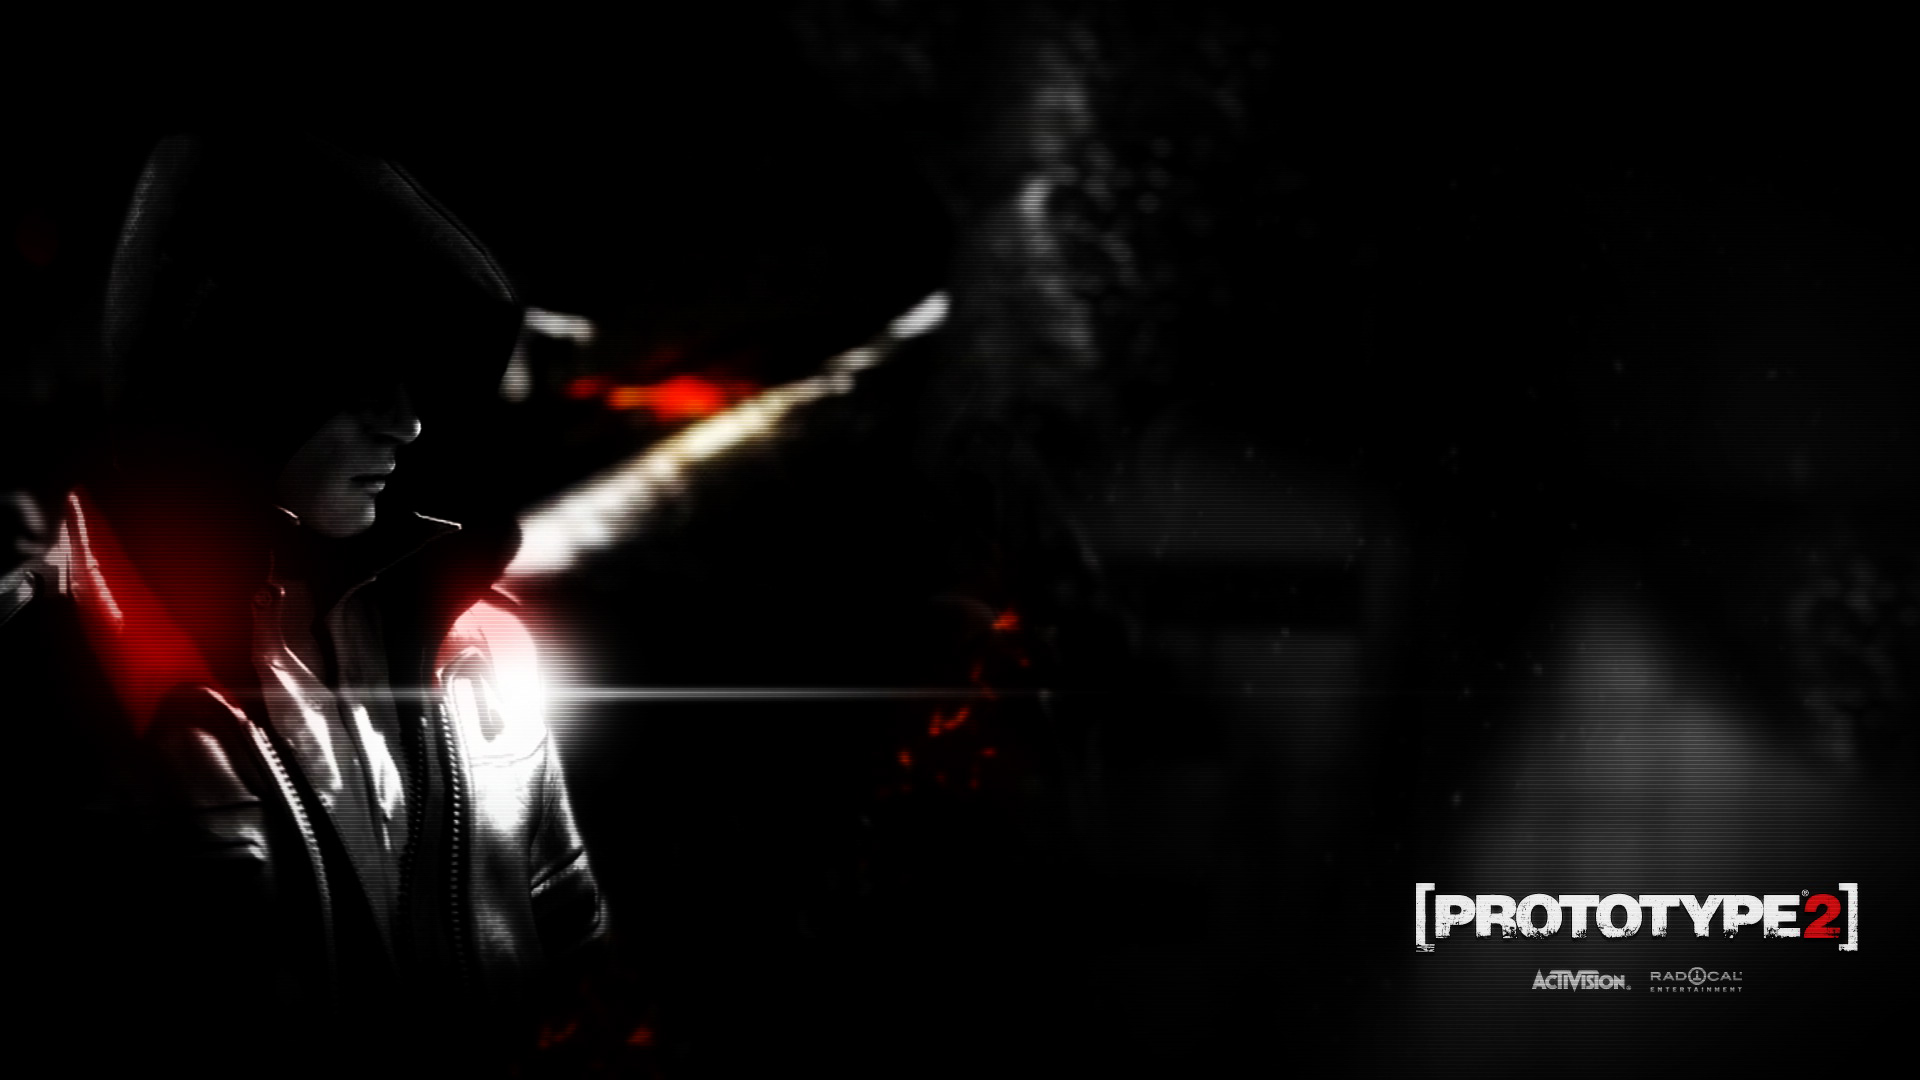 wallpapers of Prototype 2 You are downloading Prototype 2 wallpaper 1920x1080